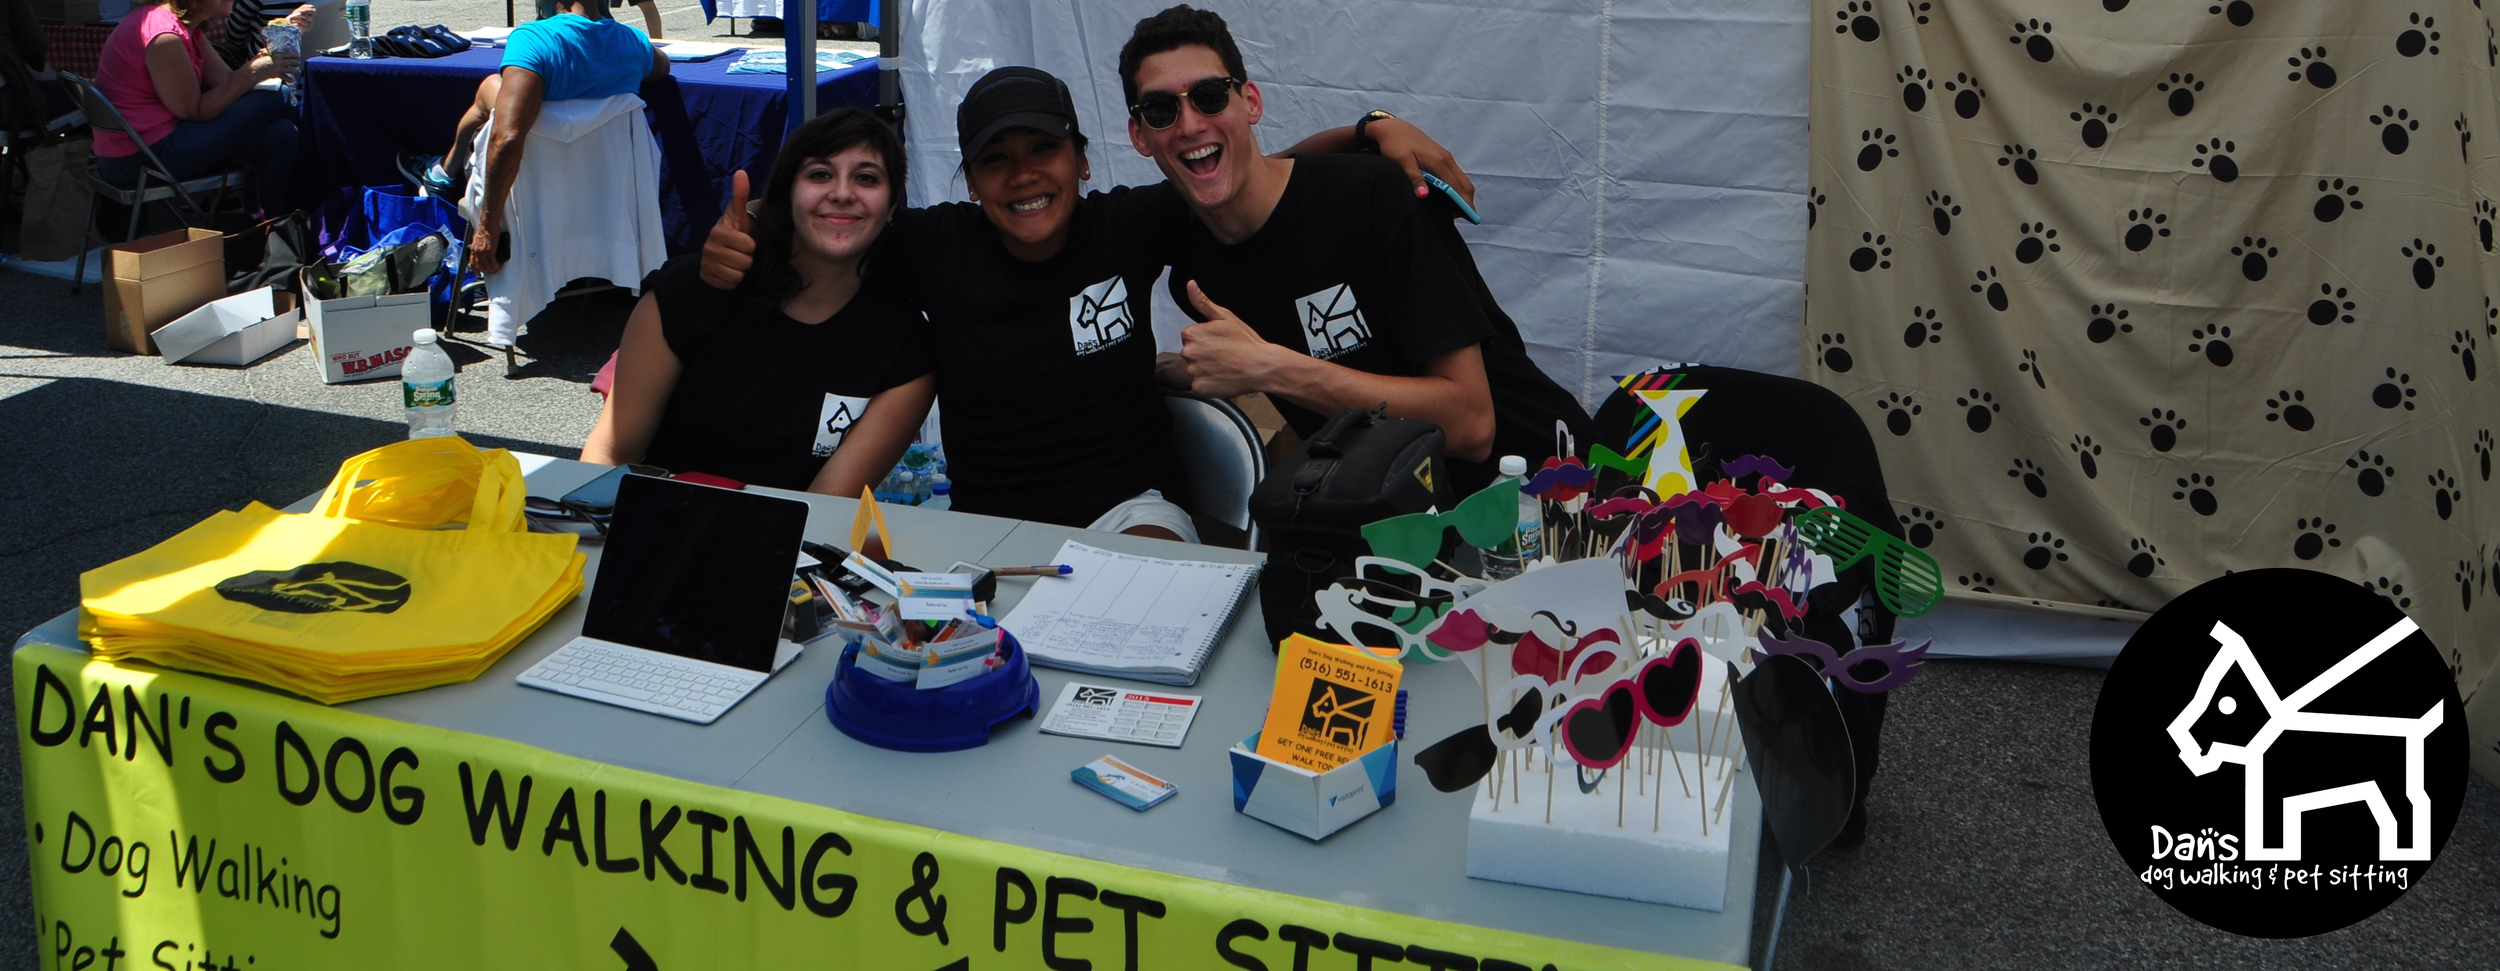 Becky, Lara and Mauro at Dan's Dog Walking and Pet Sitting at Harbor Fest 2015.jpg